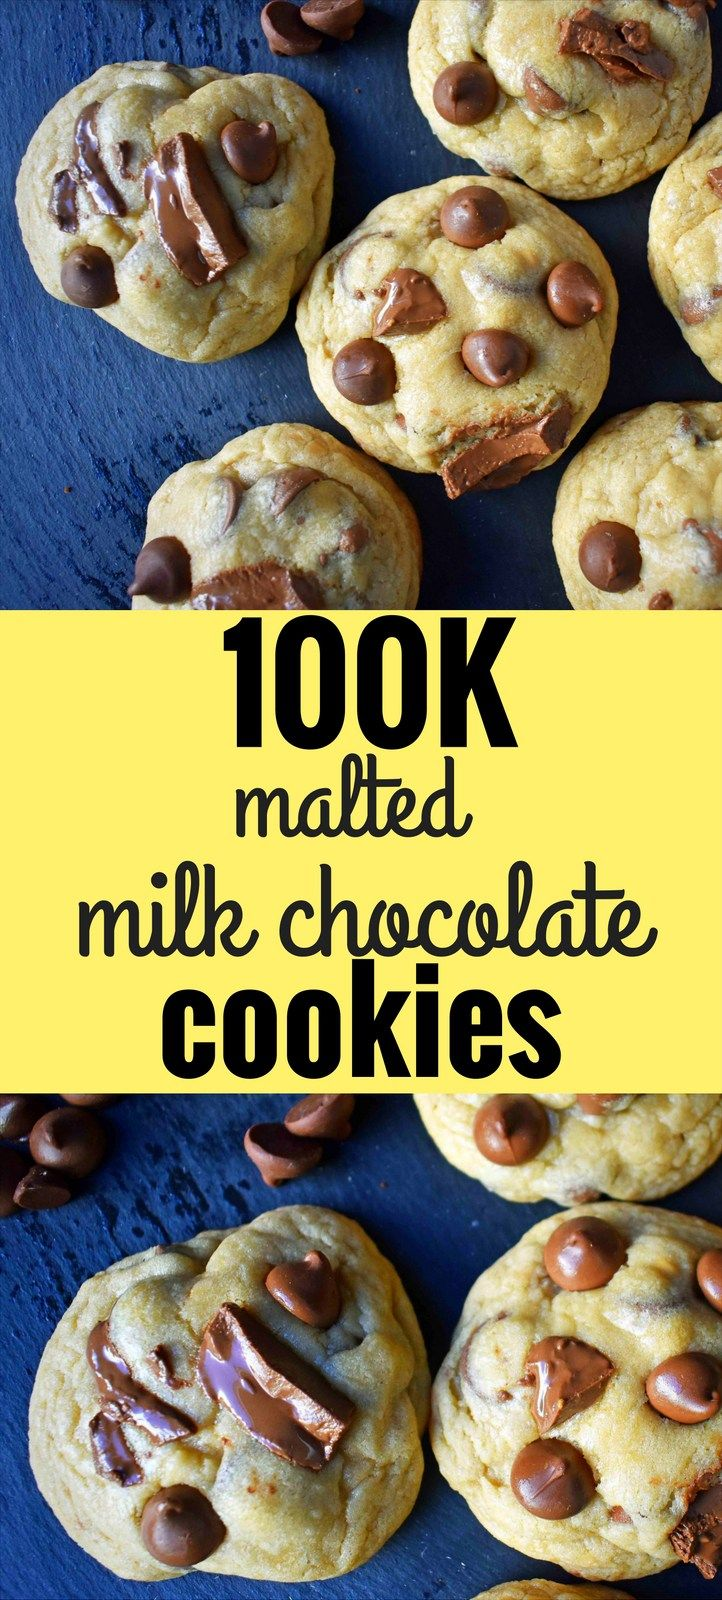 100K Malted Milk Chocolate Chip Cookies. Two unique, secret ingredients that set these cookies apart from the rest. Milk chocolate malt cookies made with vanilla malt powder and a touch of sweetened condensed milk make them the perfect chewy chocolate chip cookie. www.modernhoney.com